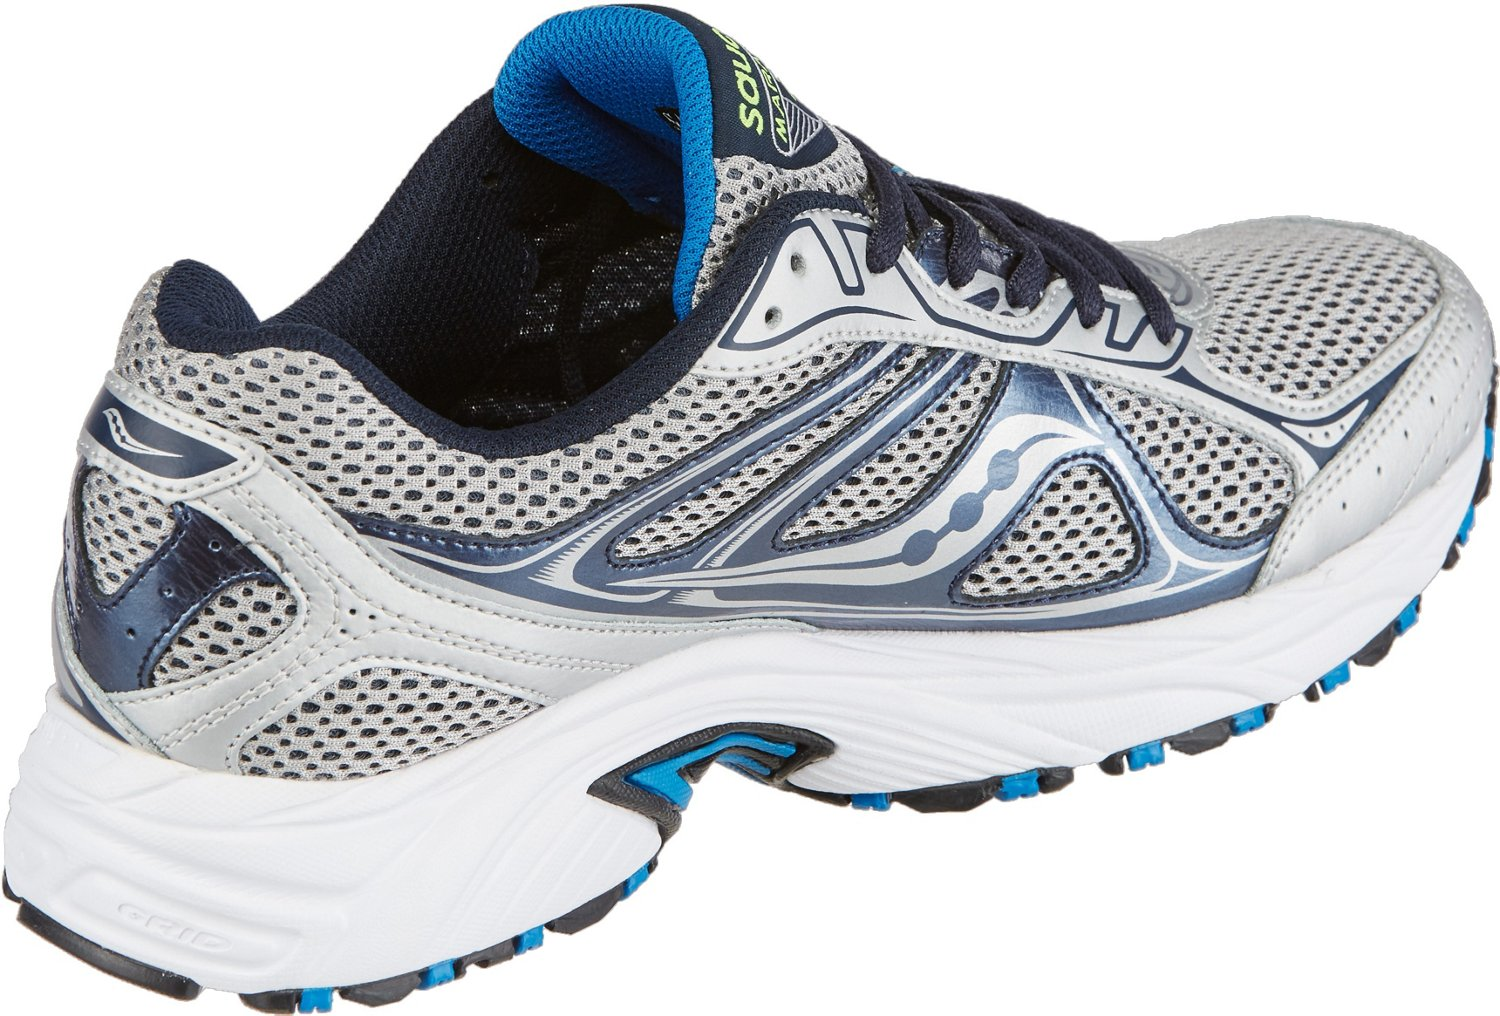 Saucony™ Men's Grid Marauder 2 Running Shoes - view number 1